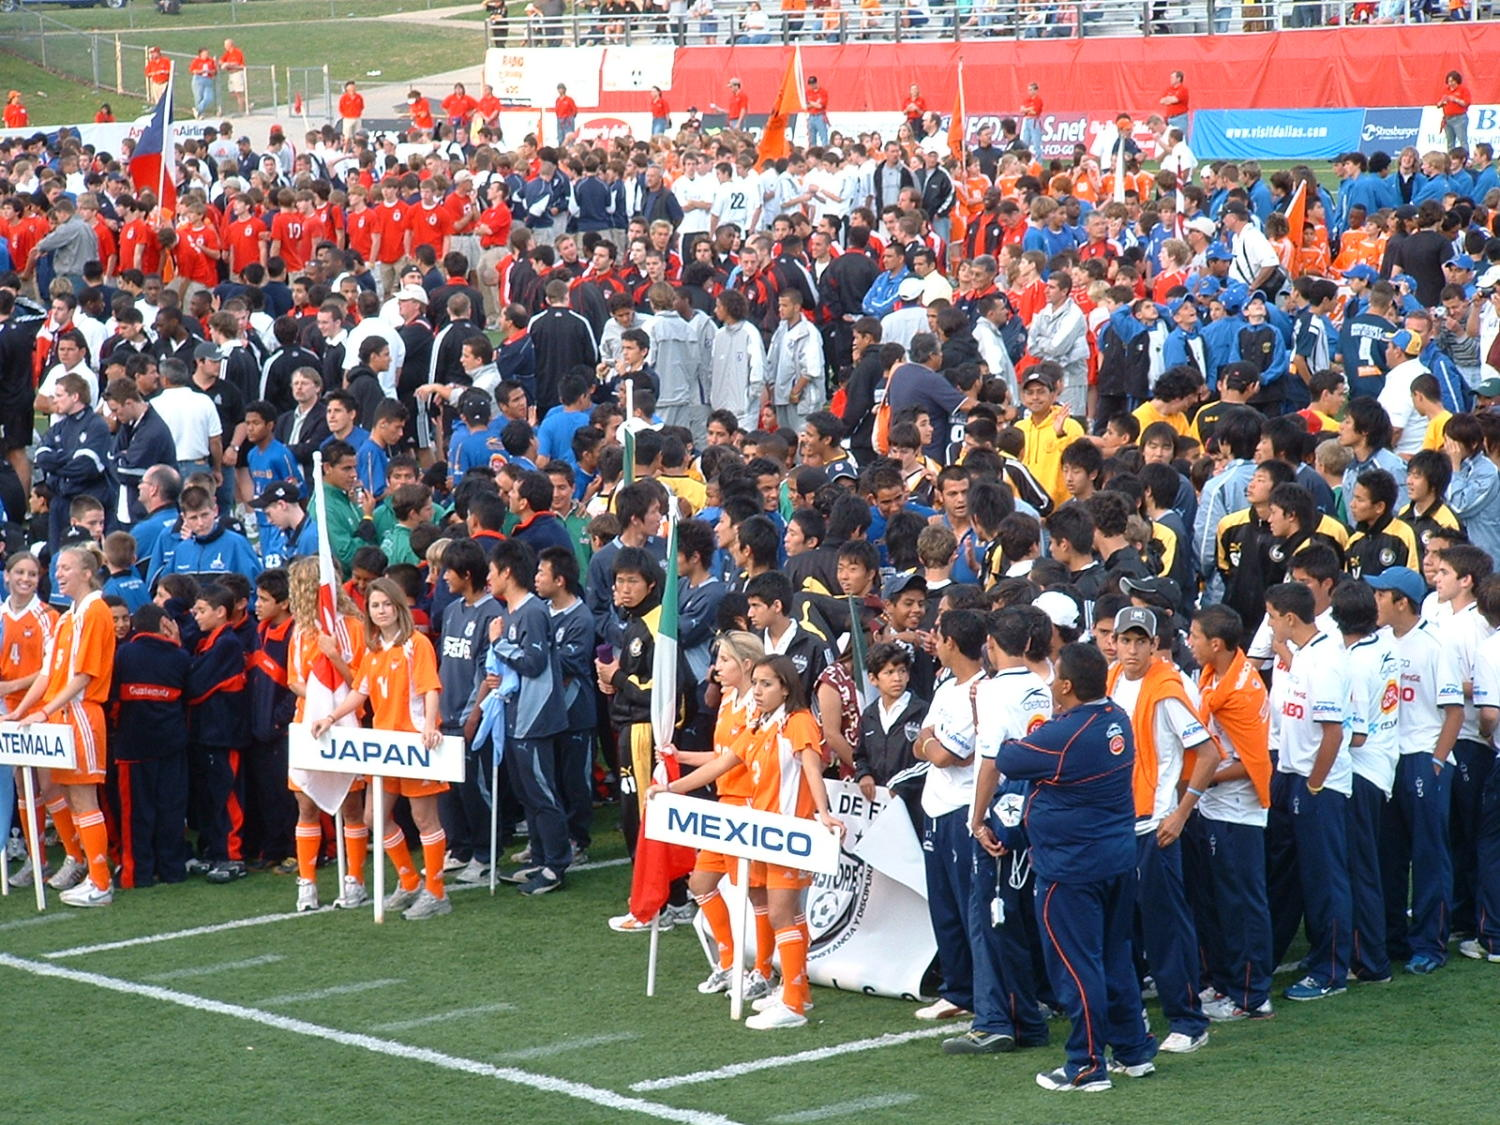 [Dallas Cup 2005 opening ceremony]                                                                                                      [Sequence #]: 1 of 1